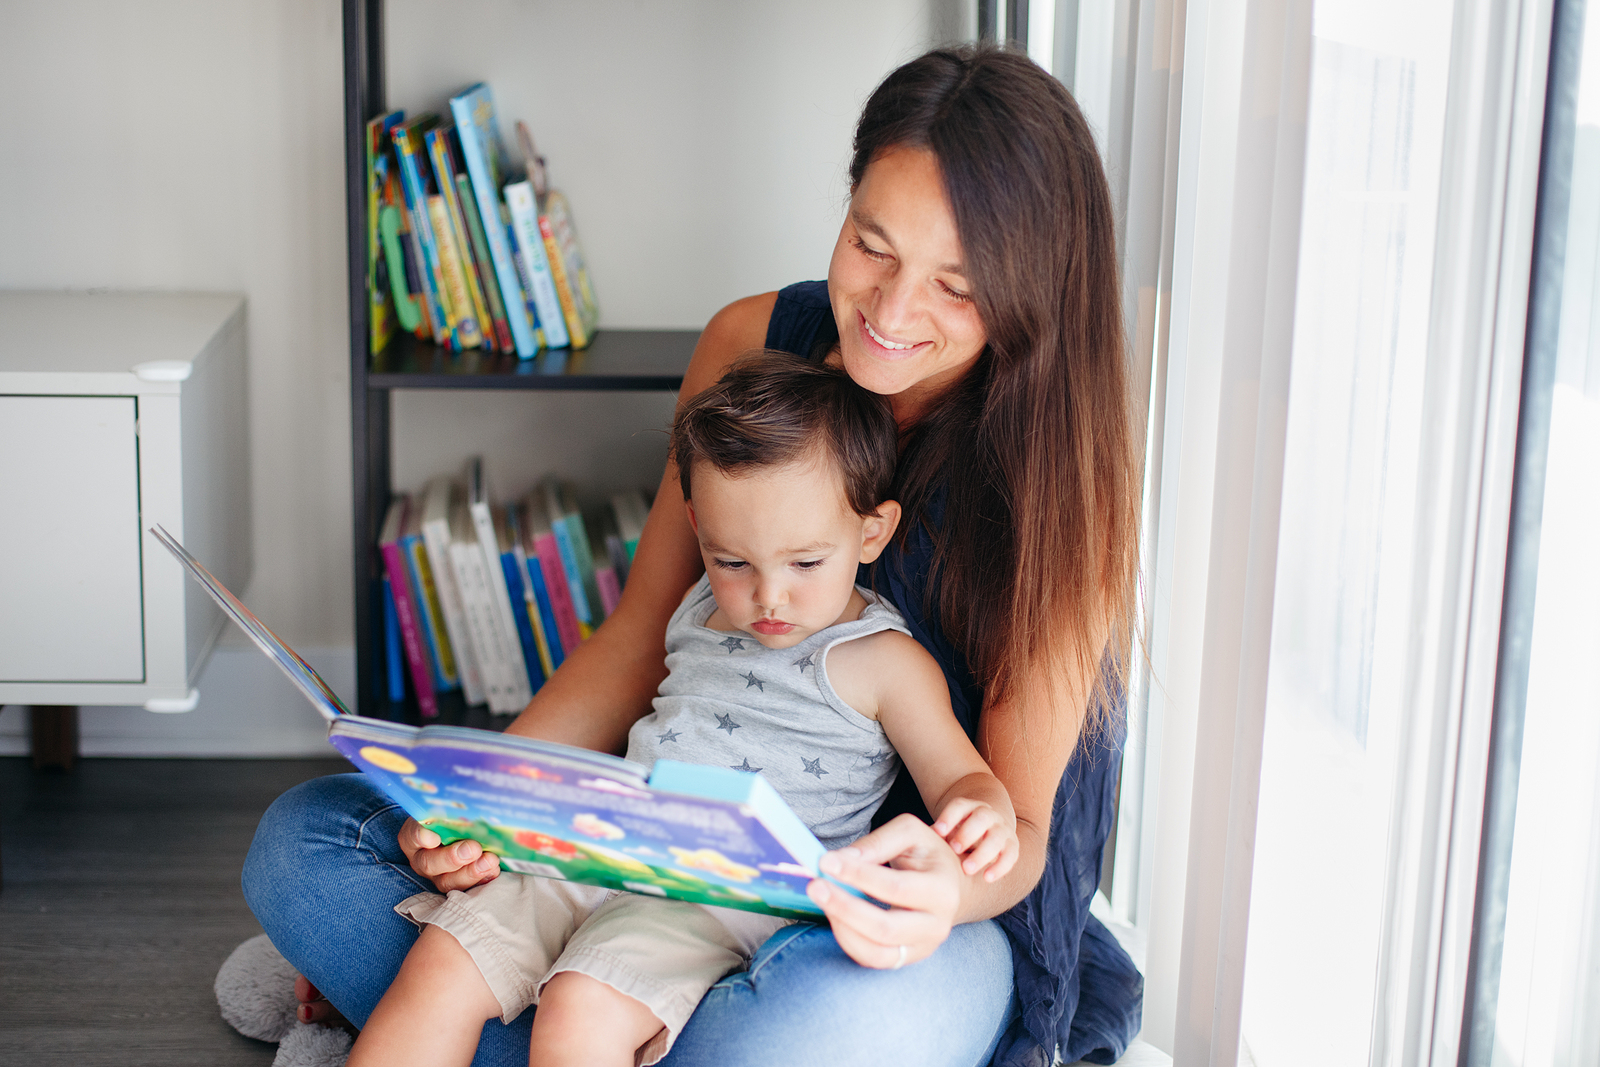 Mother with son boy sitting on floor at home and reading book together.